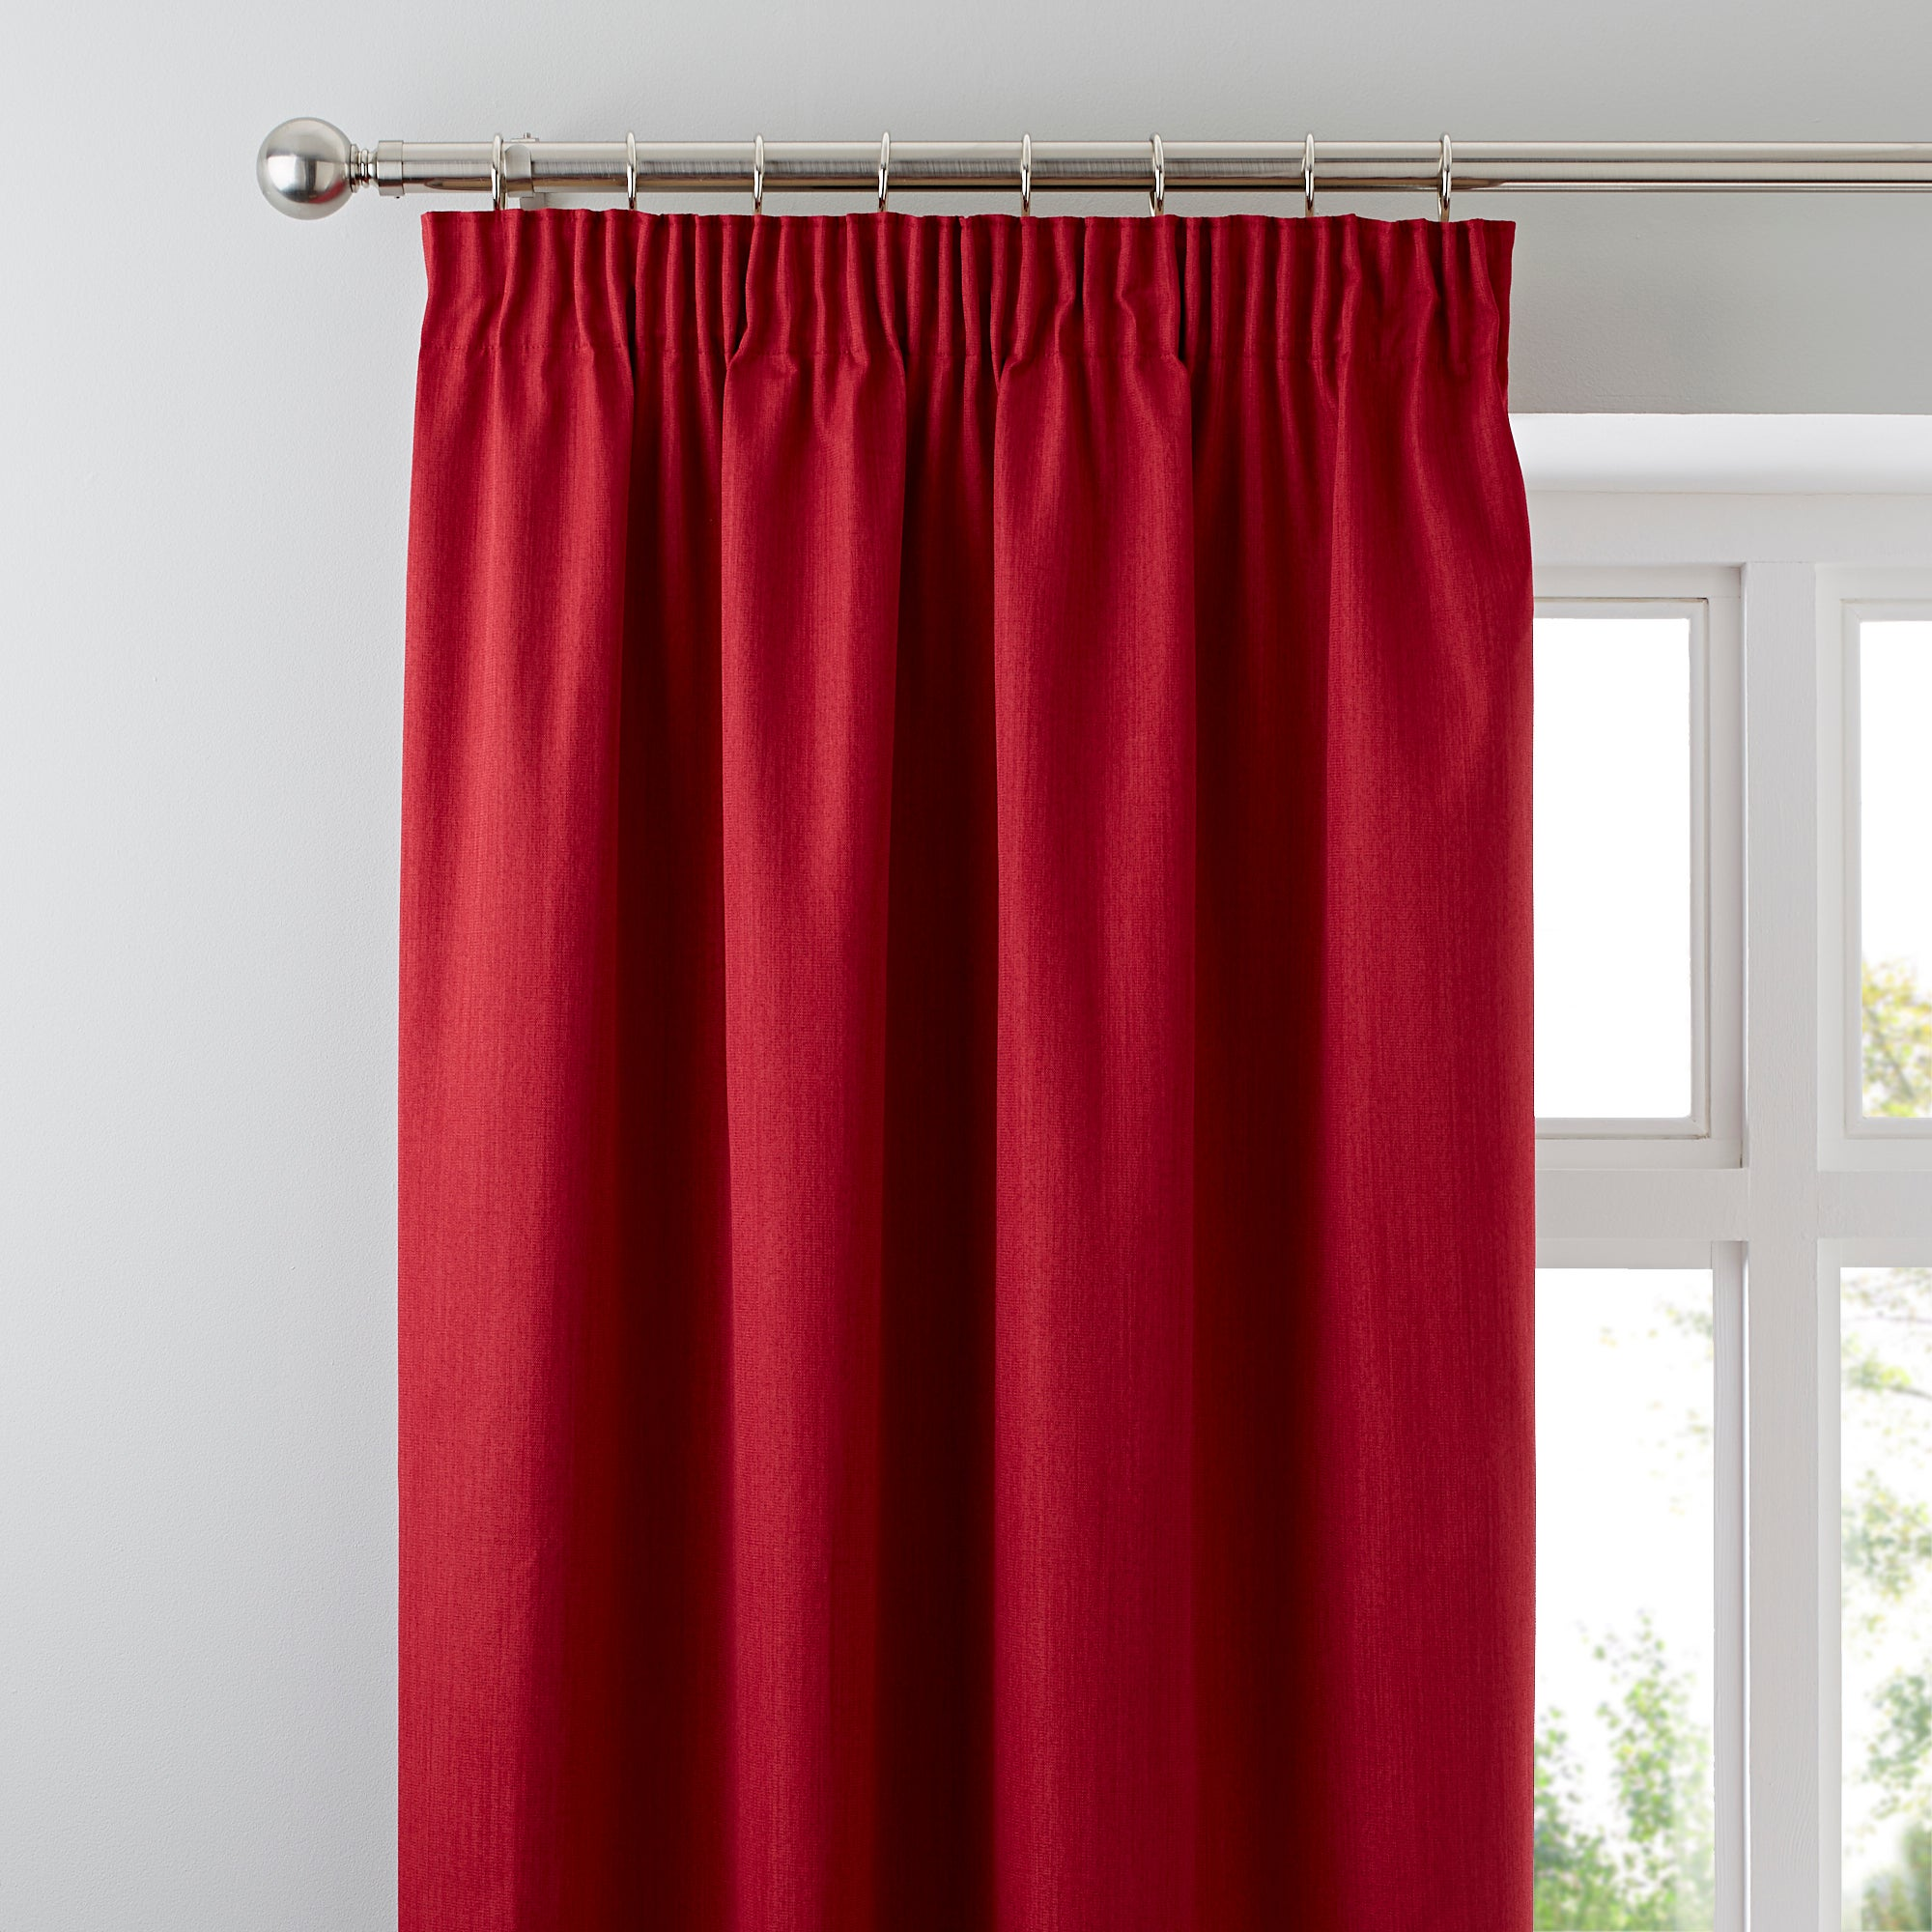 Waters and Noble Red Solar Blackout Pencil Pleat Curtains